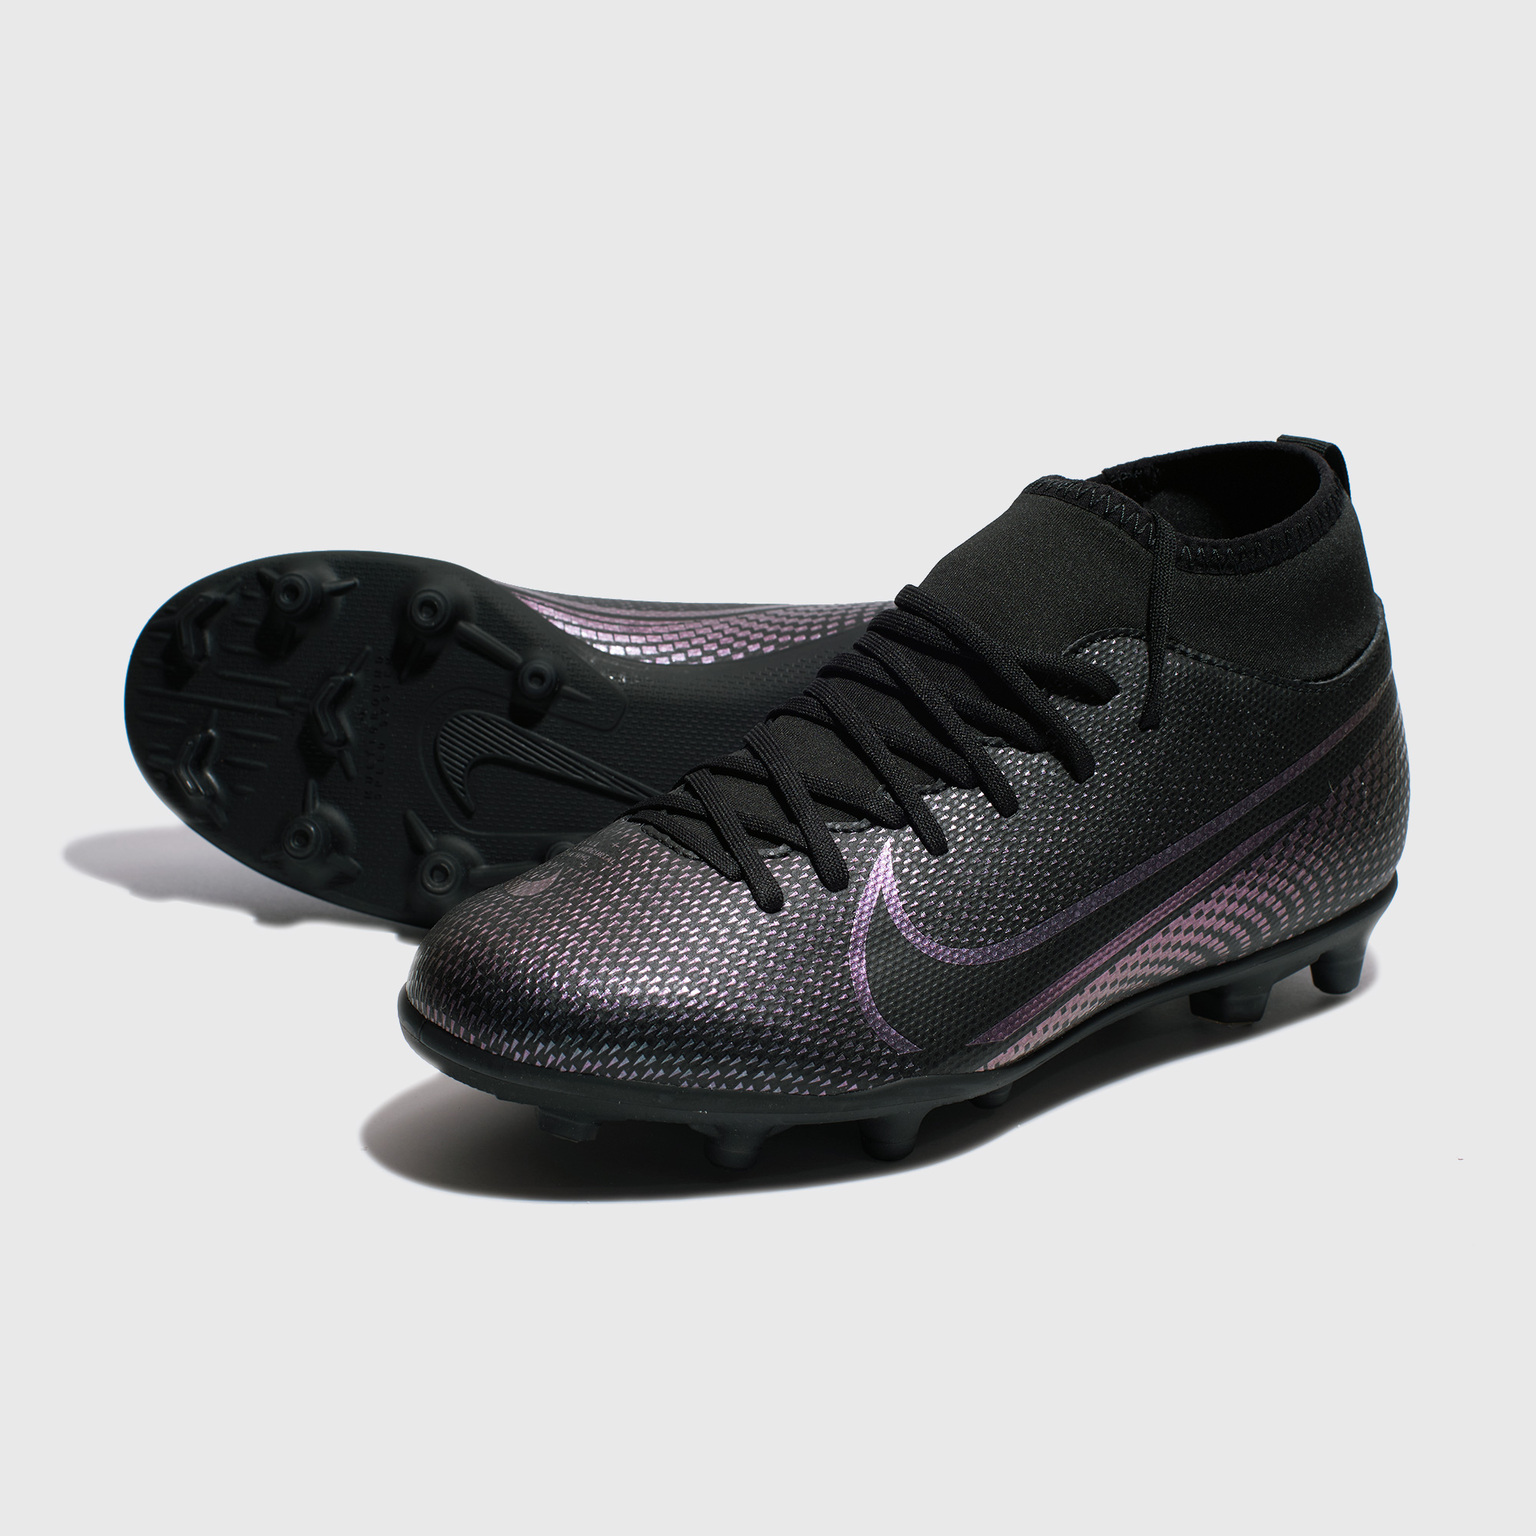 Бутсы детские Nike Superfly 7 Club FG/MG AT8150-010 бутсы nike superfly 6 club fg mg ah7363 001